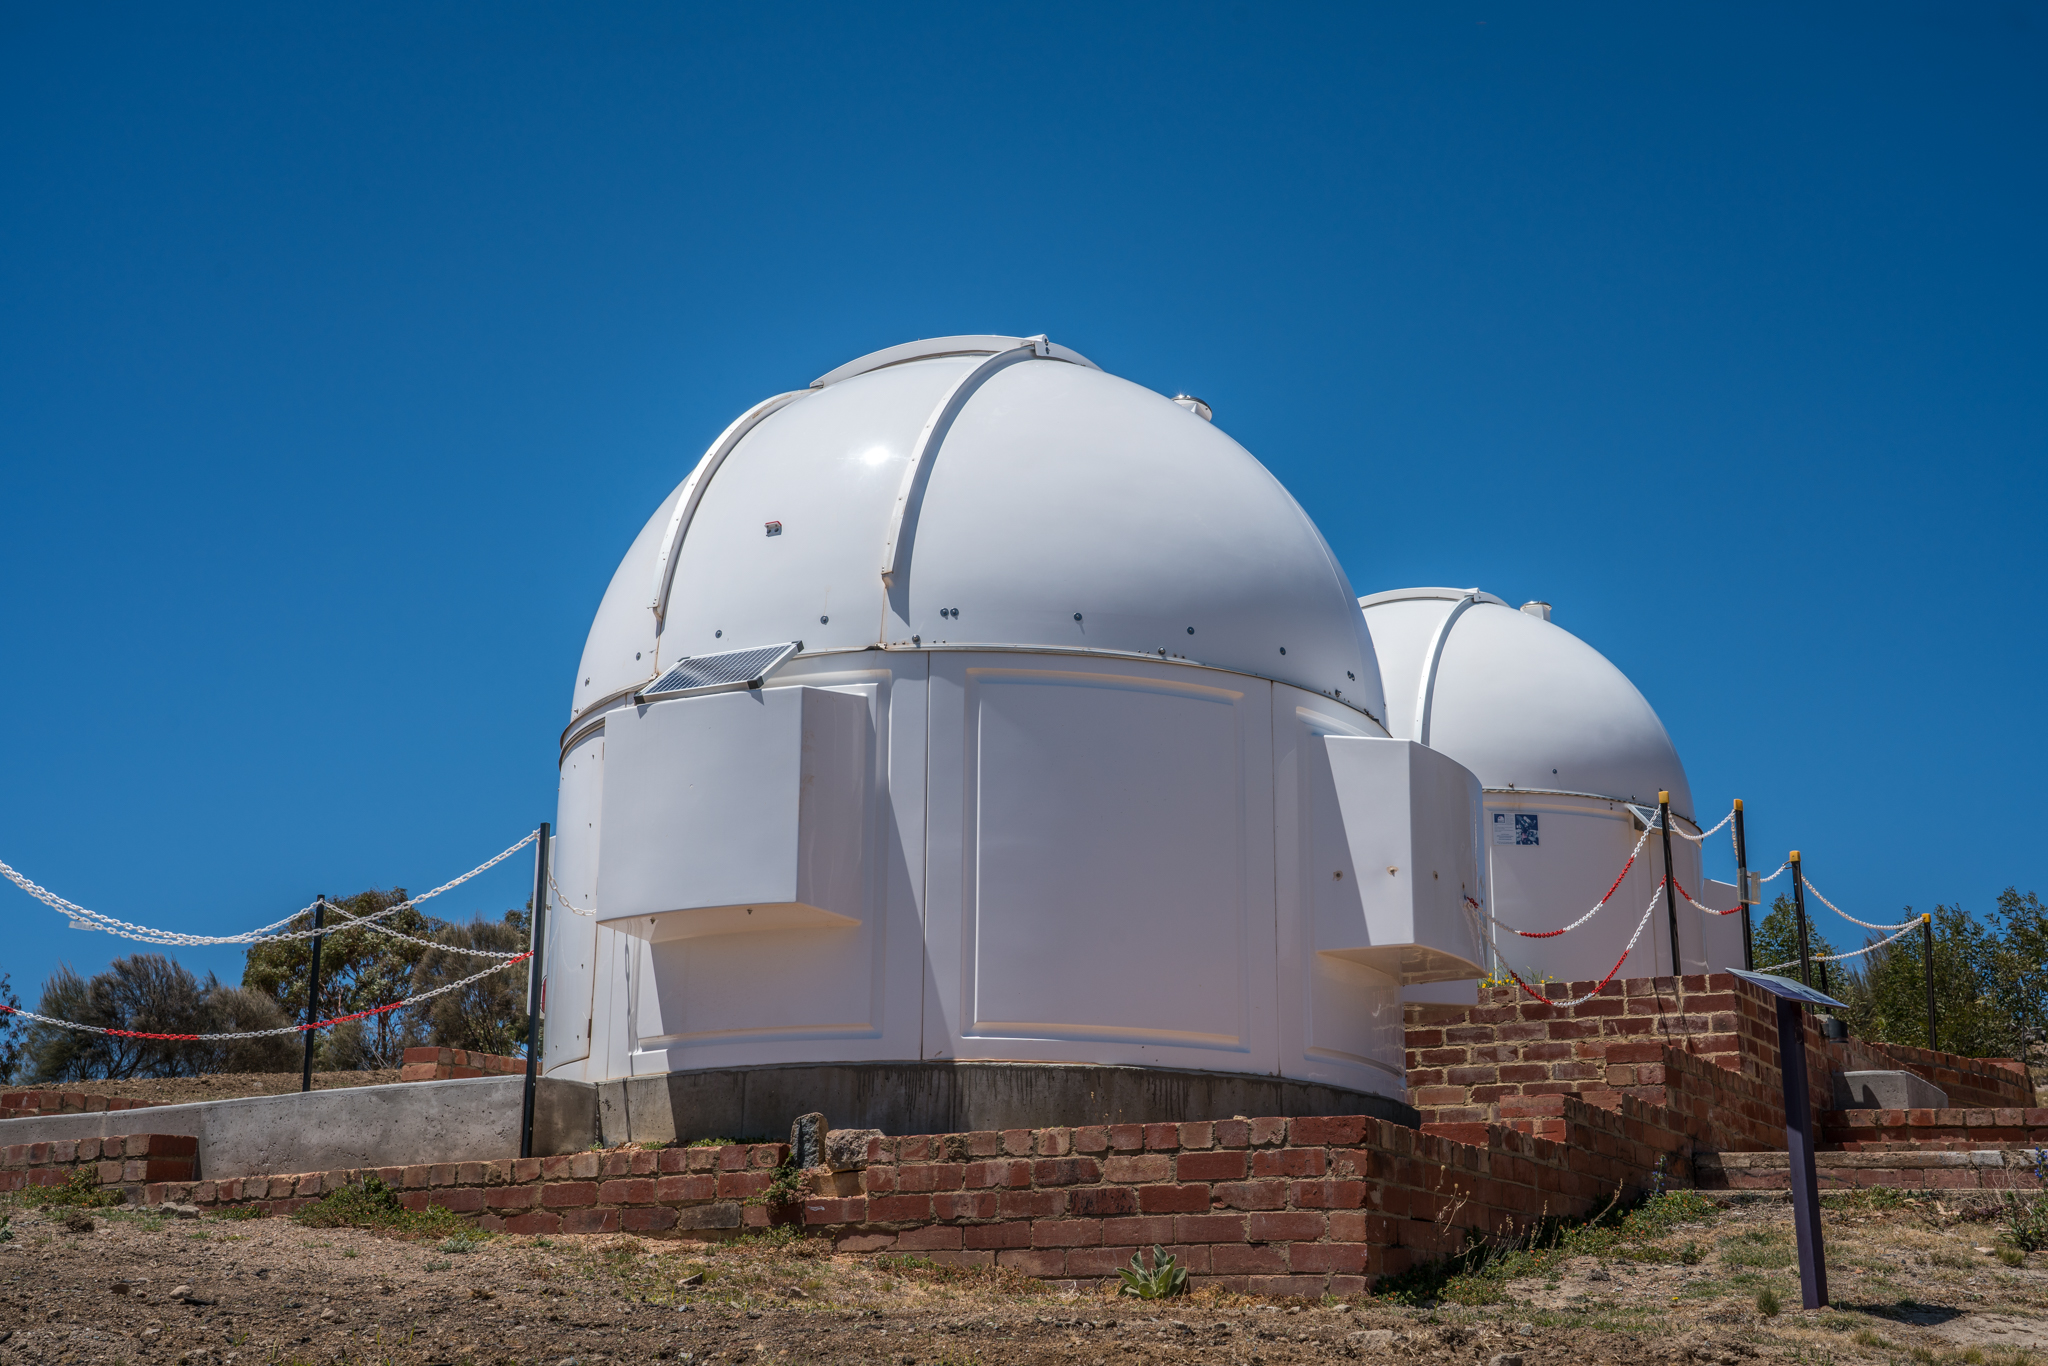 Two small observatory domes, one in front of the other, sitting up a hill on top of the old brick structures.